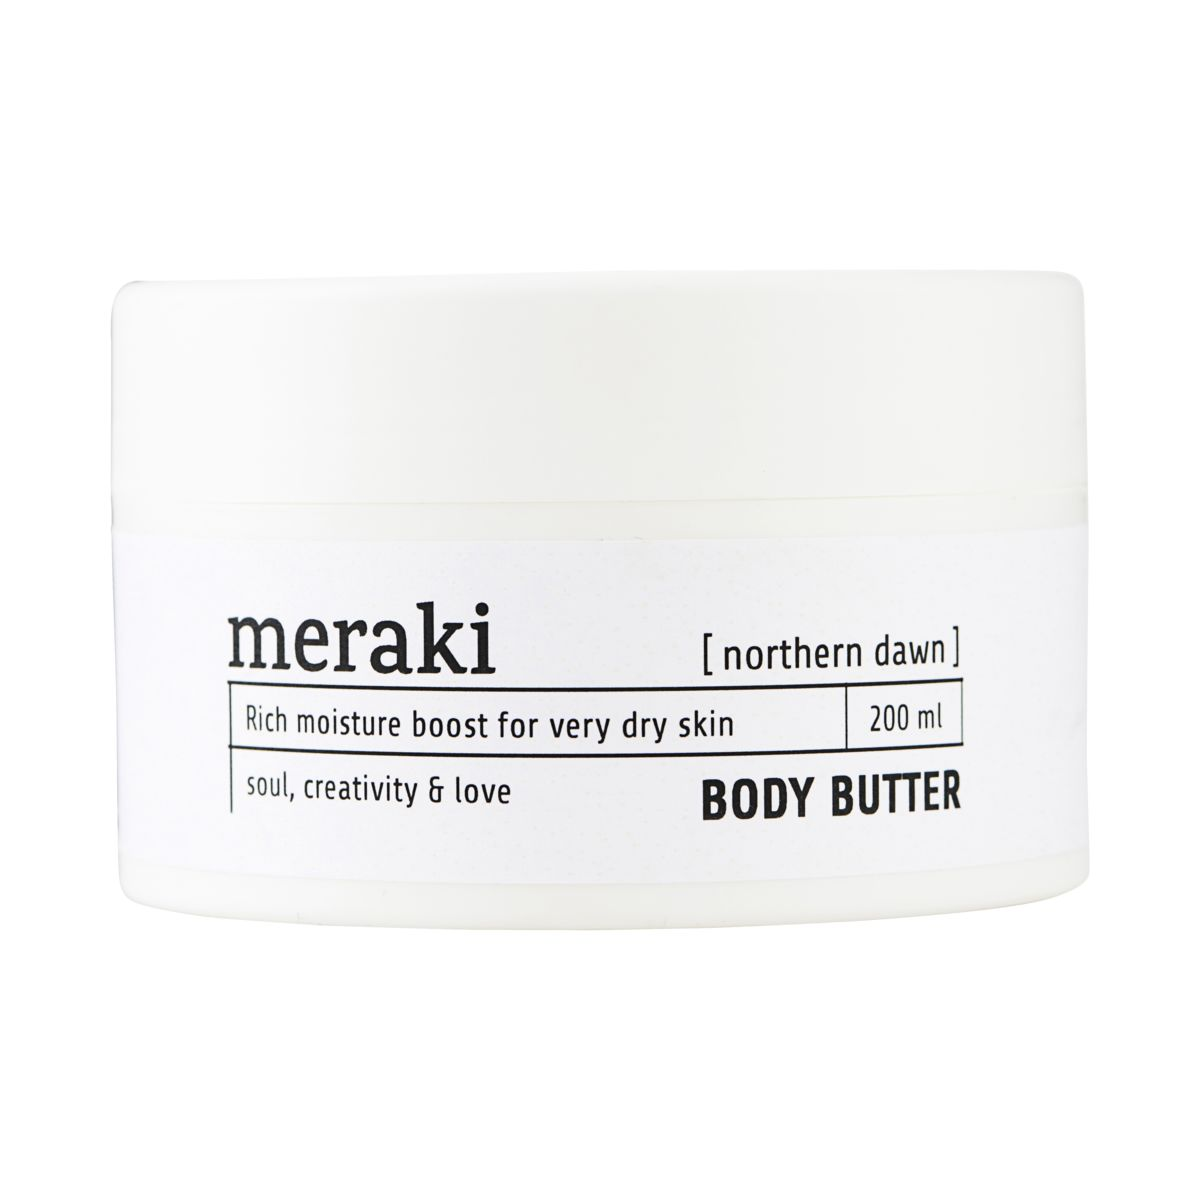 Meraki body butter, Northern dawn, 200 ml. 10,5 cm